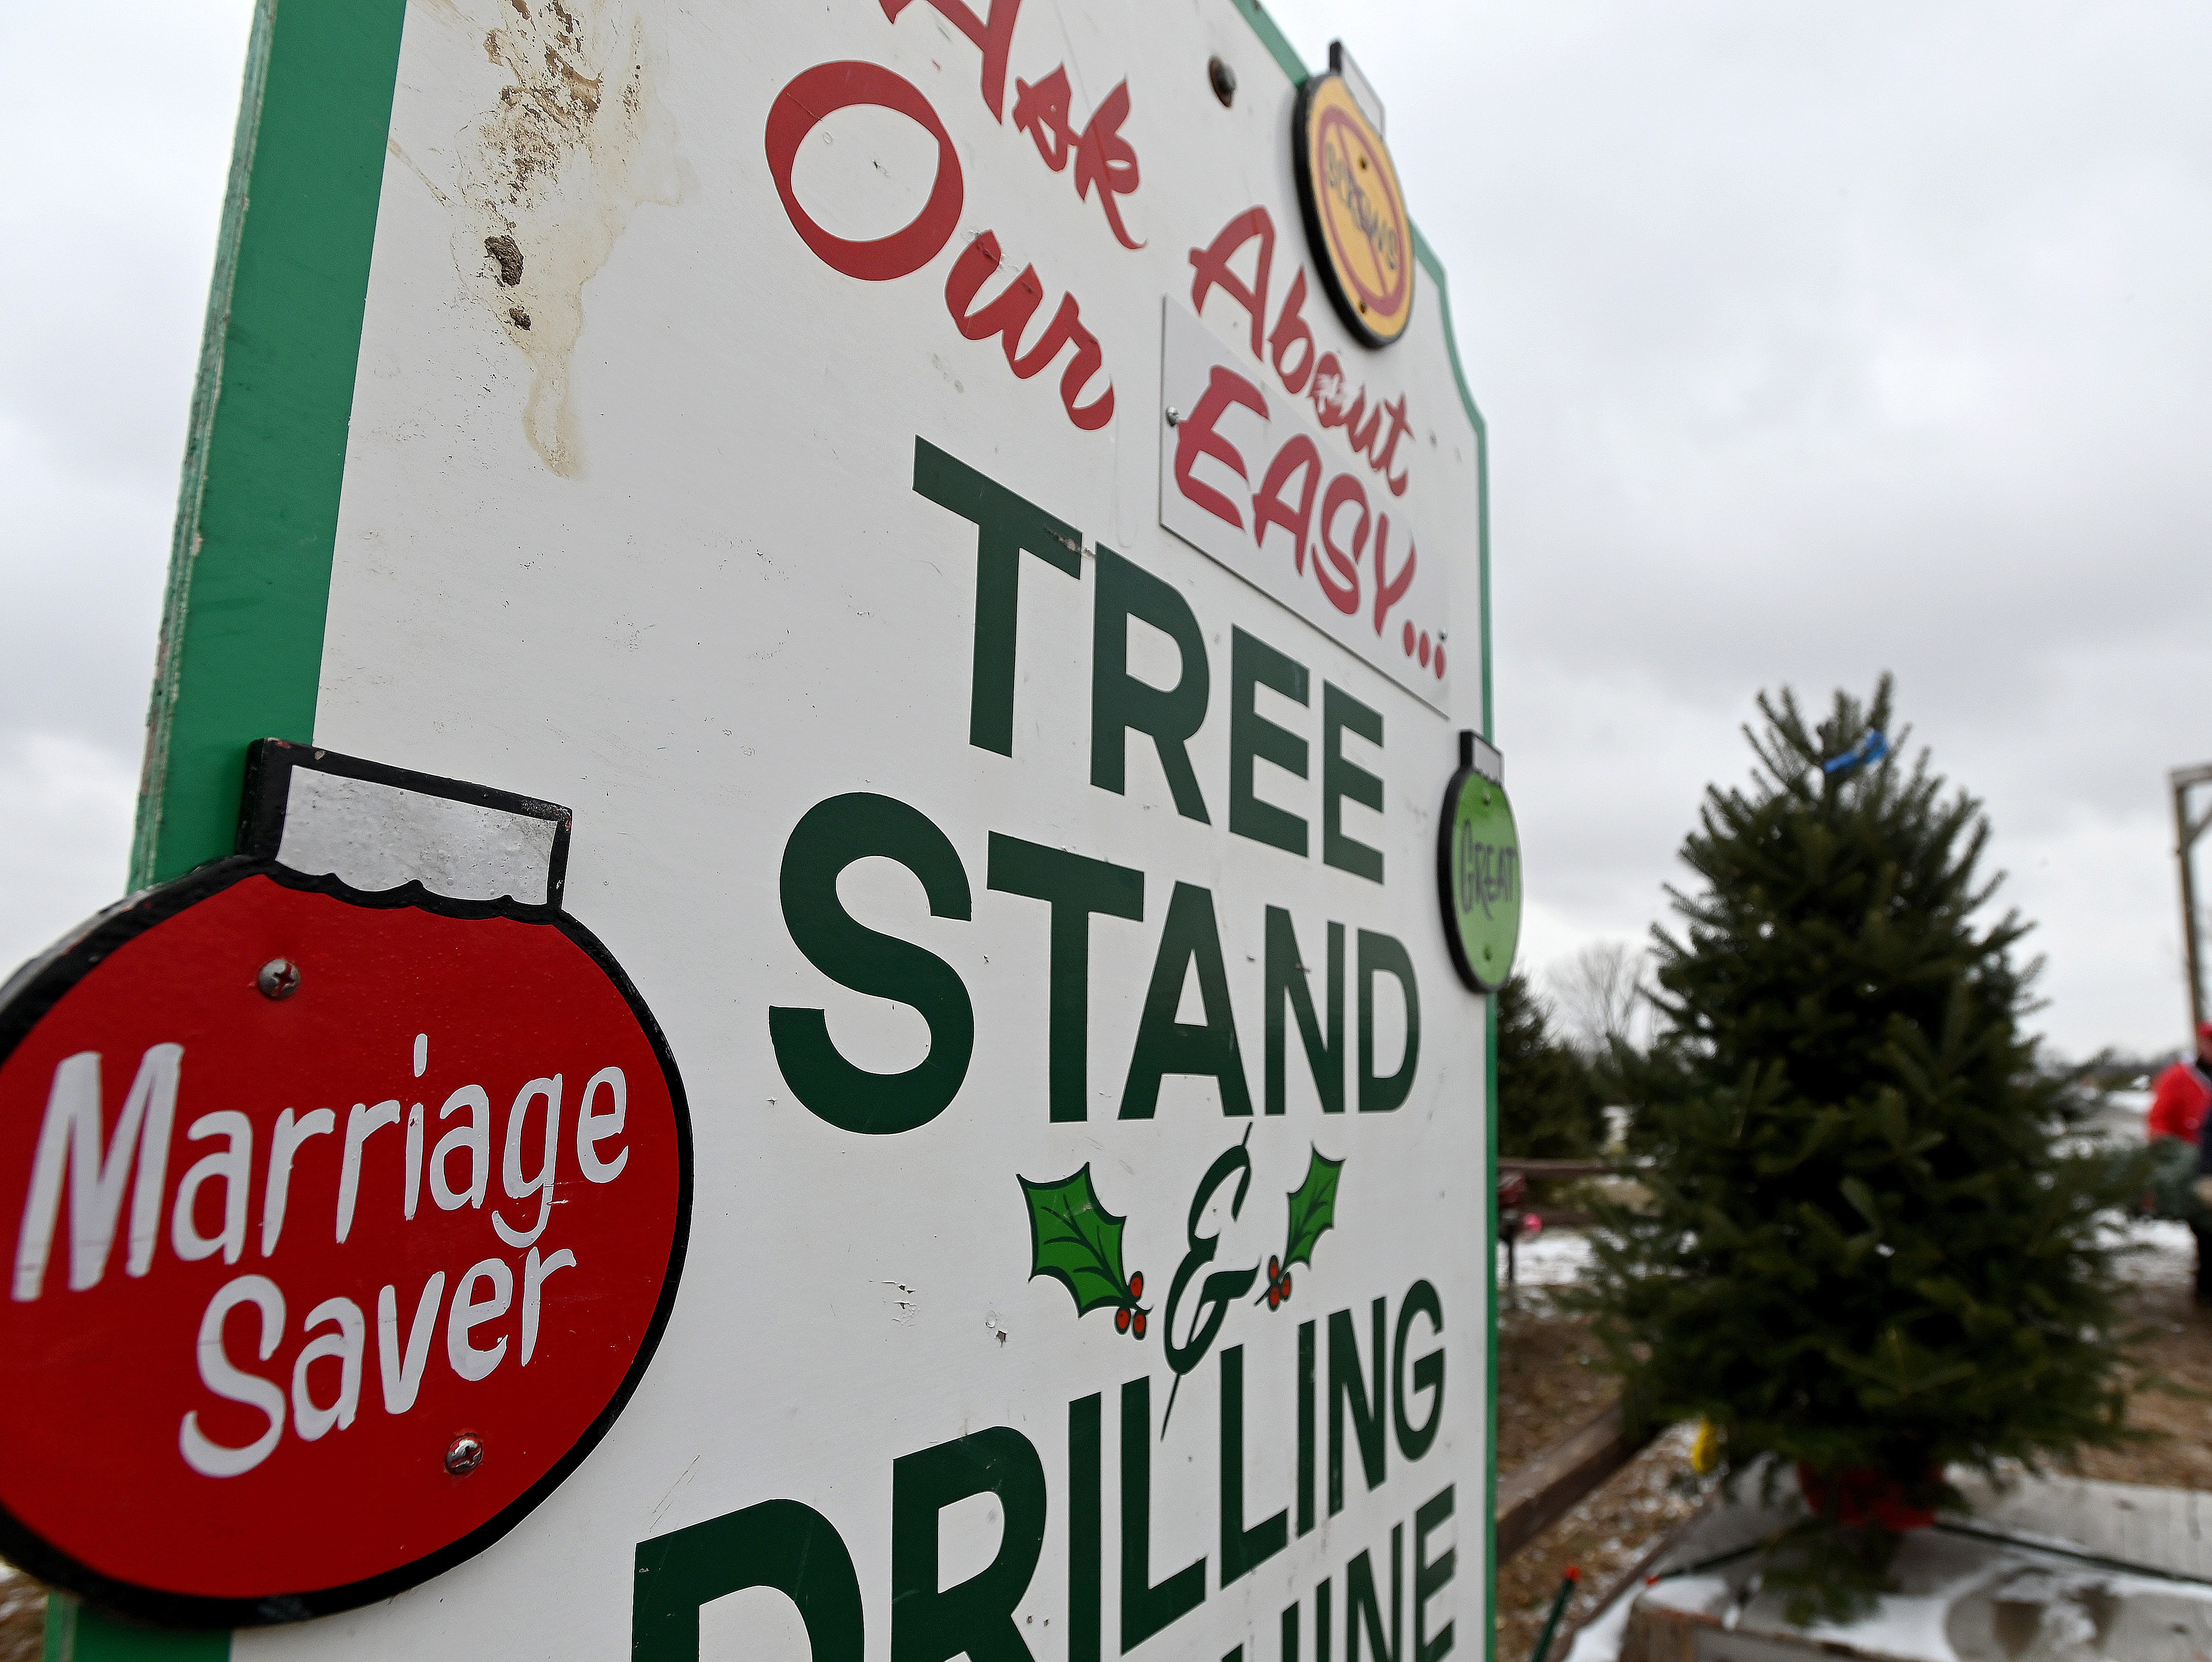 """Marriage Saver"" says the sign touting a special tree stand available.  Each tree is trimmed and squared, pre-drilled for a stand, vibrated to remove any dead needles or debris, and then wrapped for transport atop the family cruiser."